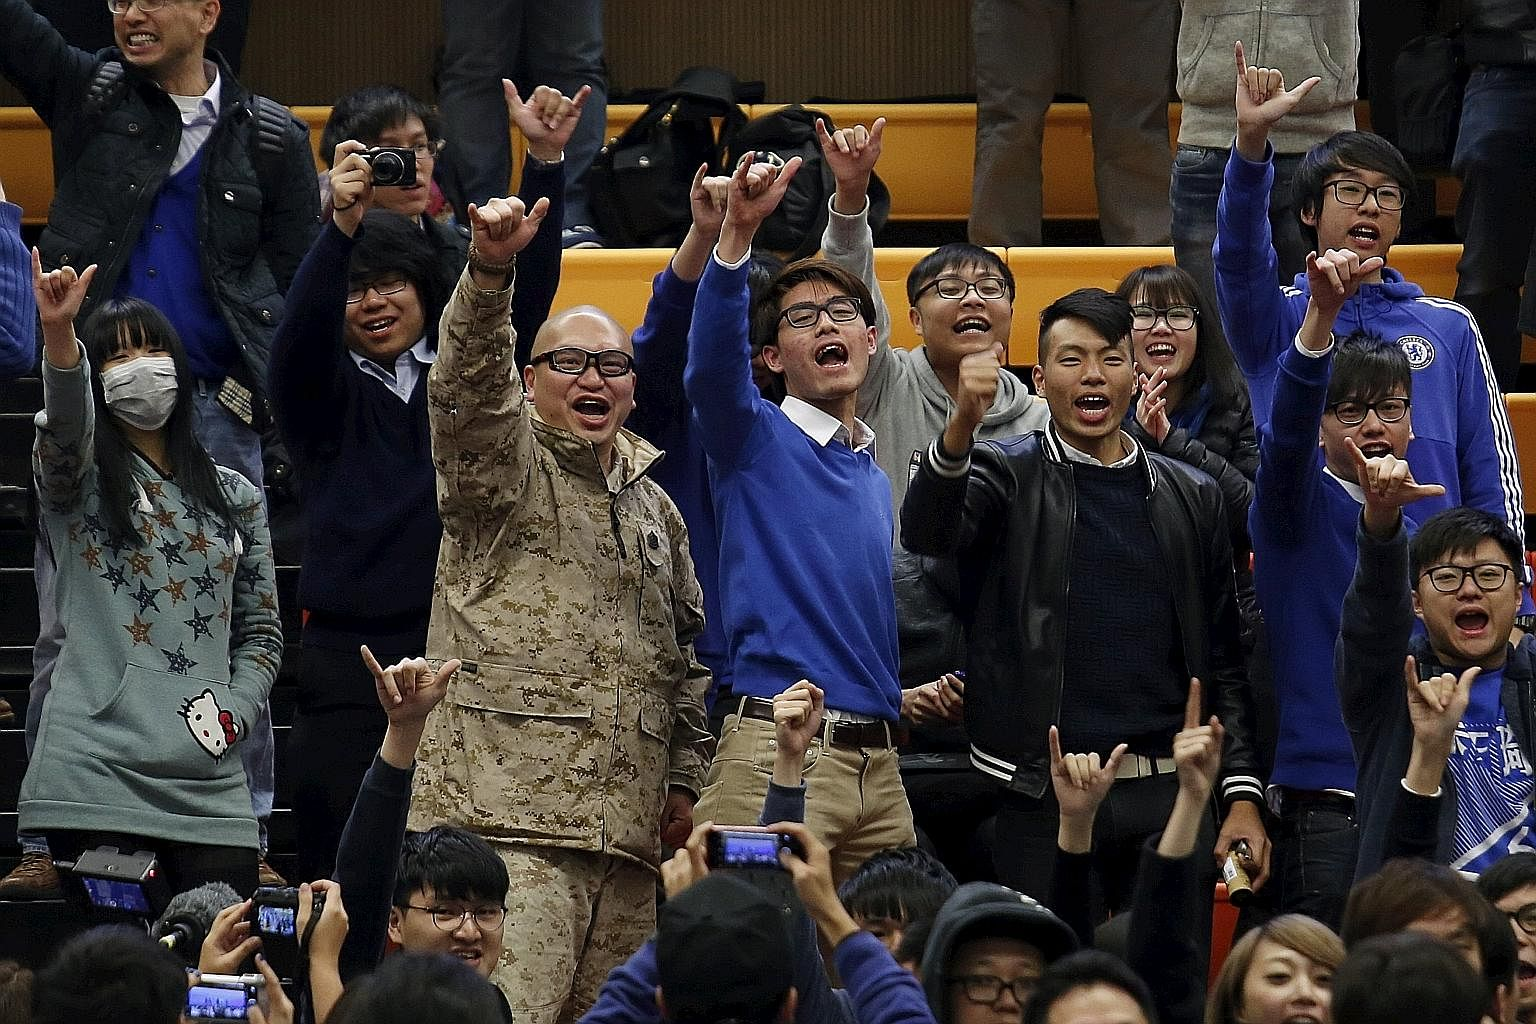 Supporters of Mr Leung, a candidate from Hong Kong Indigenous, chanting slogans during the announcement of the final results of a by-election in Hong Kong yesterday. Mr Leung placed third among seven contenders.